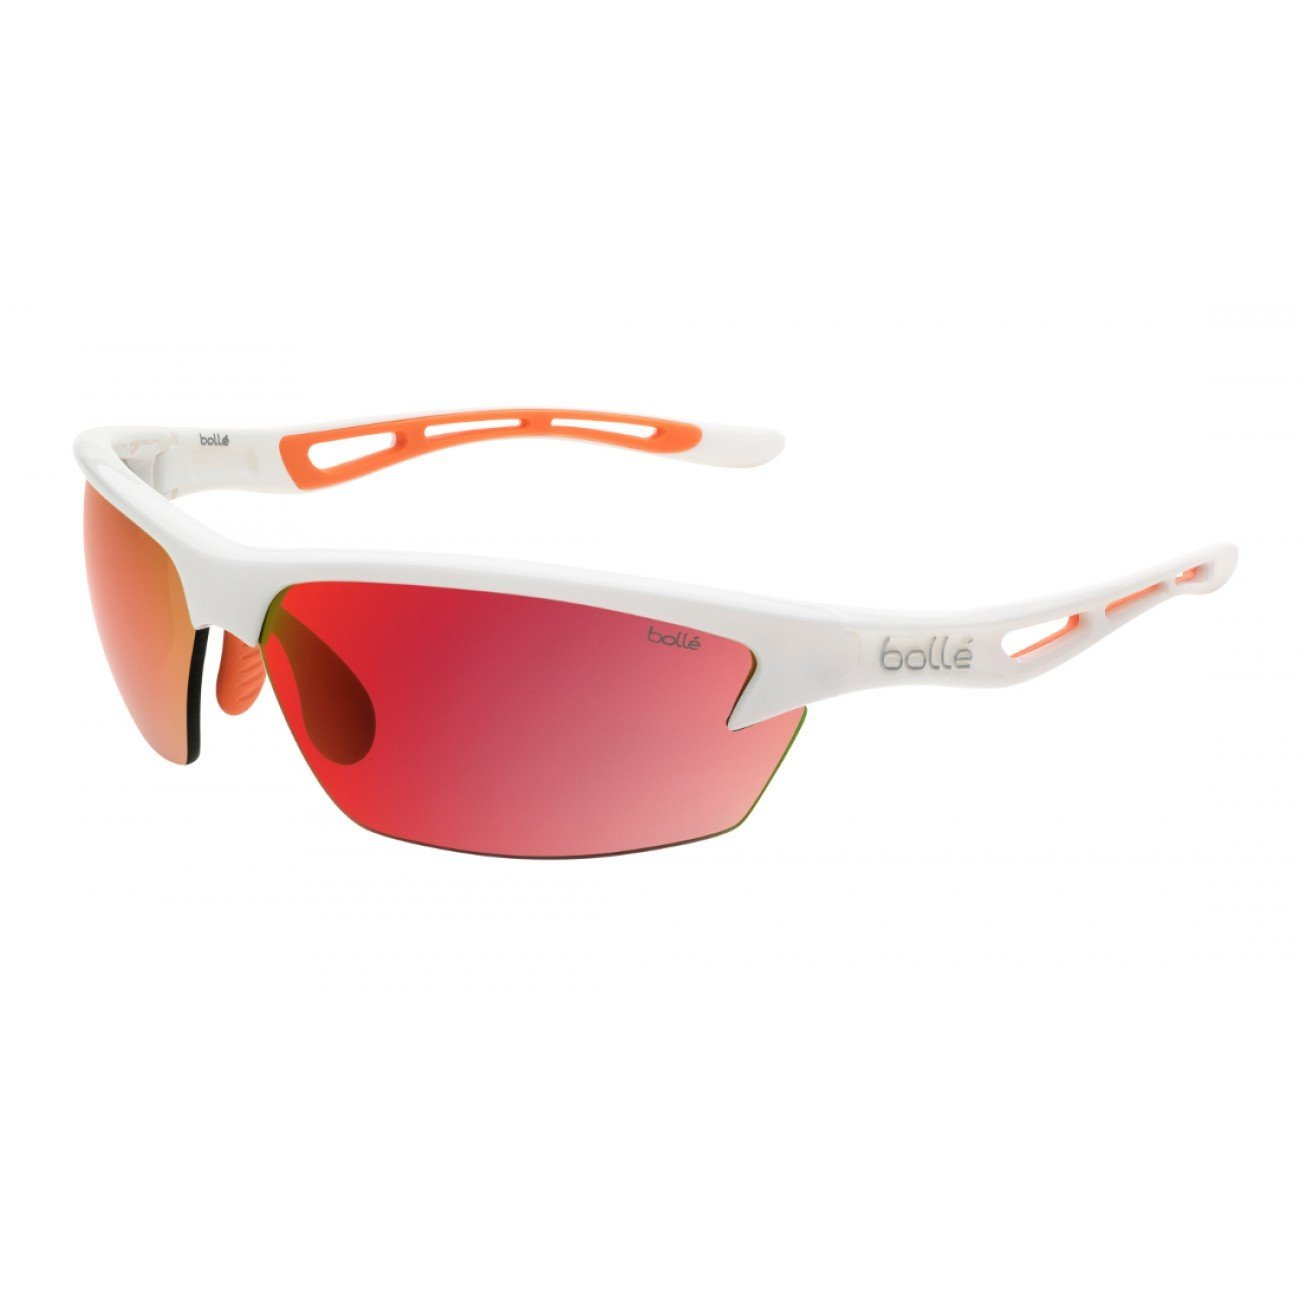 cf3bad975 Bolle Bolt Sunglasses, Shiny White/Gray, Modulator V3 Golf oleo AF:  Amazon.ca: Sports & Outdoors